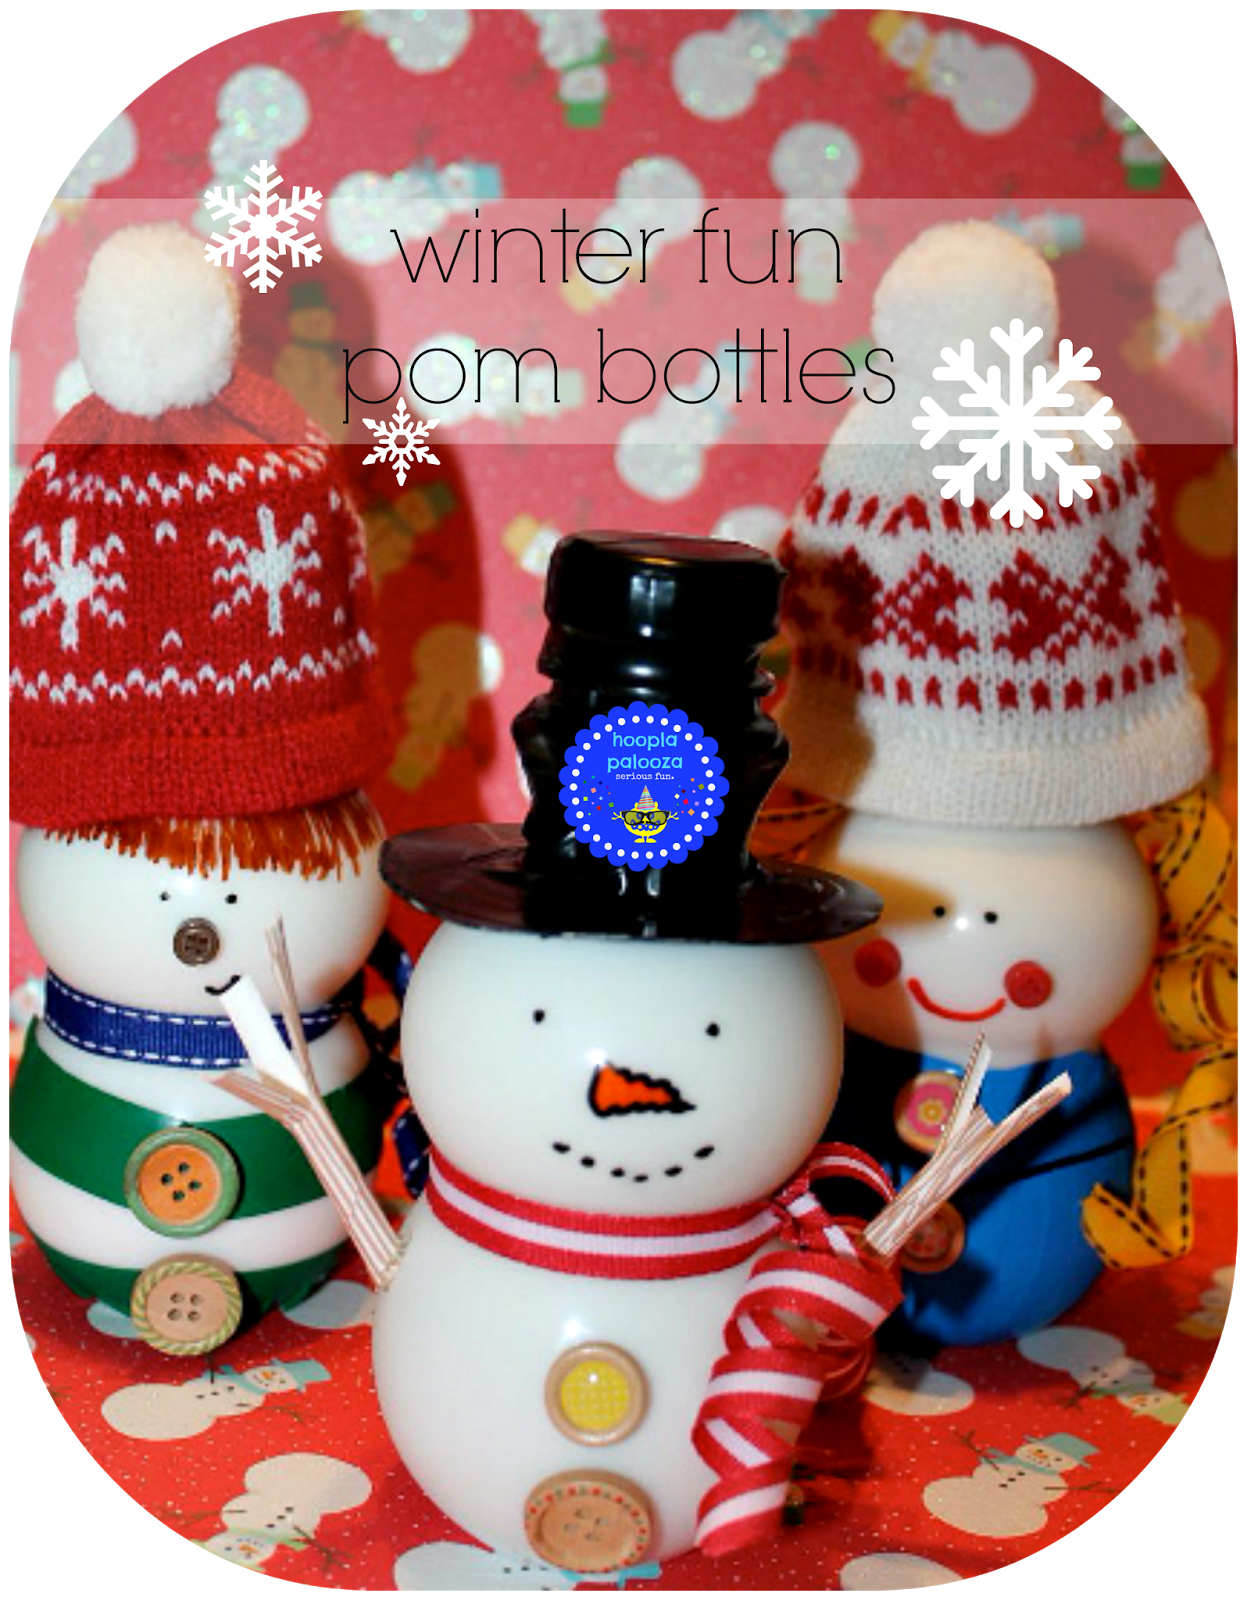 hoopla palooza winter fun pom bottles Yule crafts